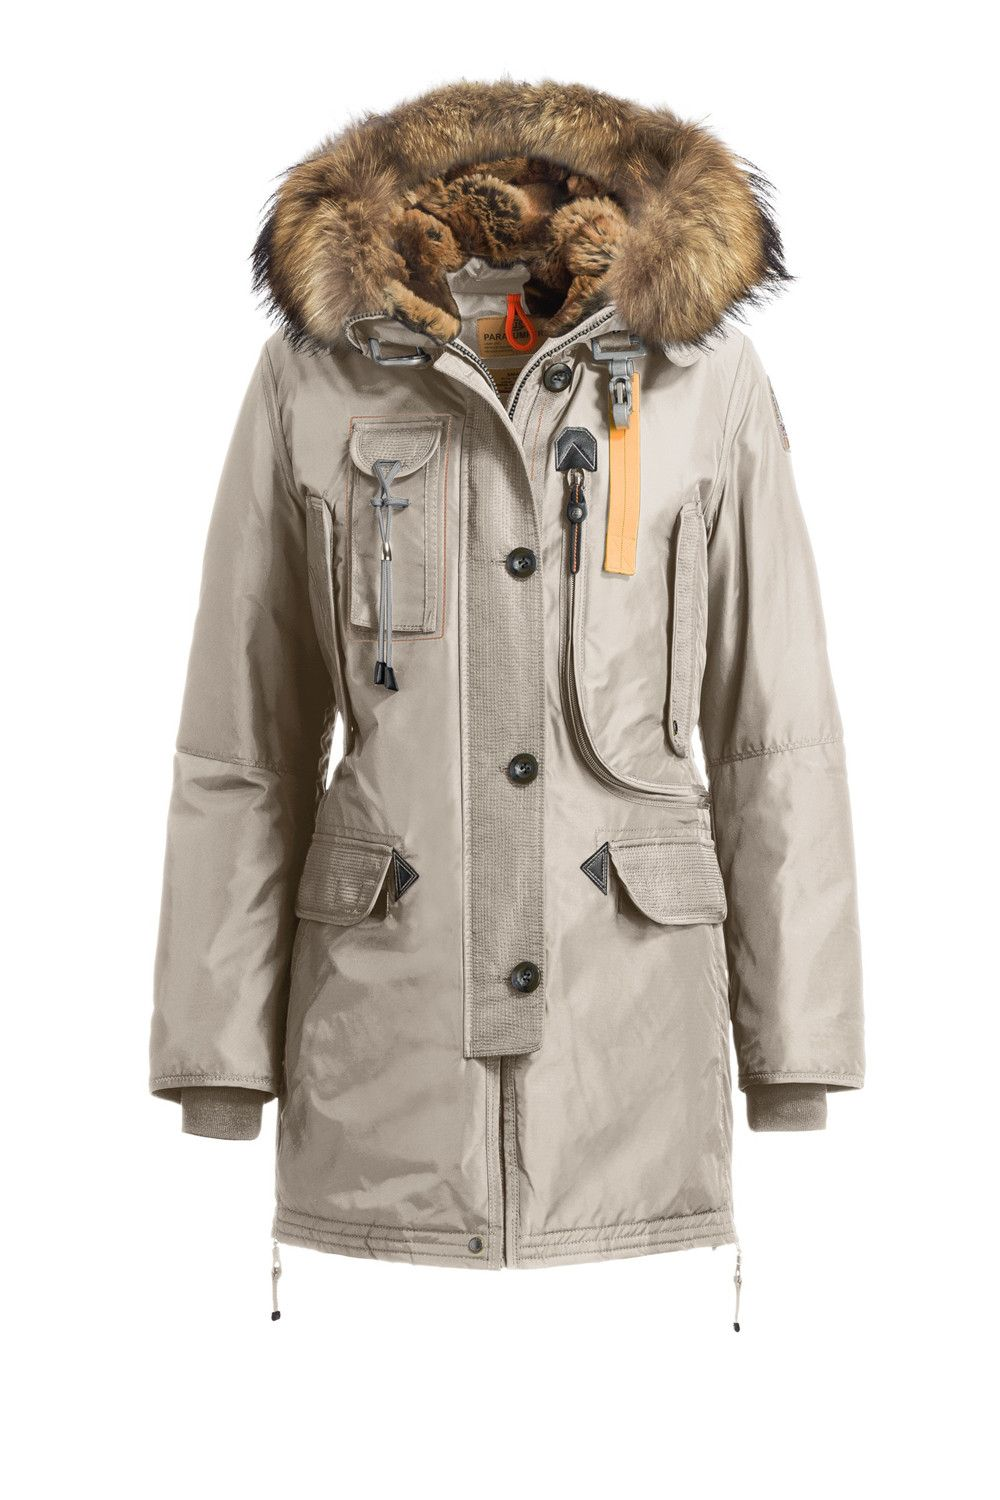 Pin by shoesus on pin Jackets, Parka, Outerwear women